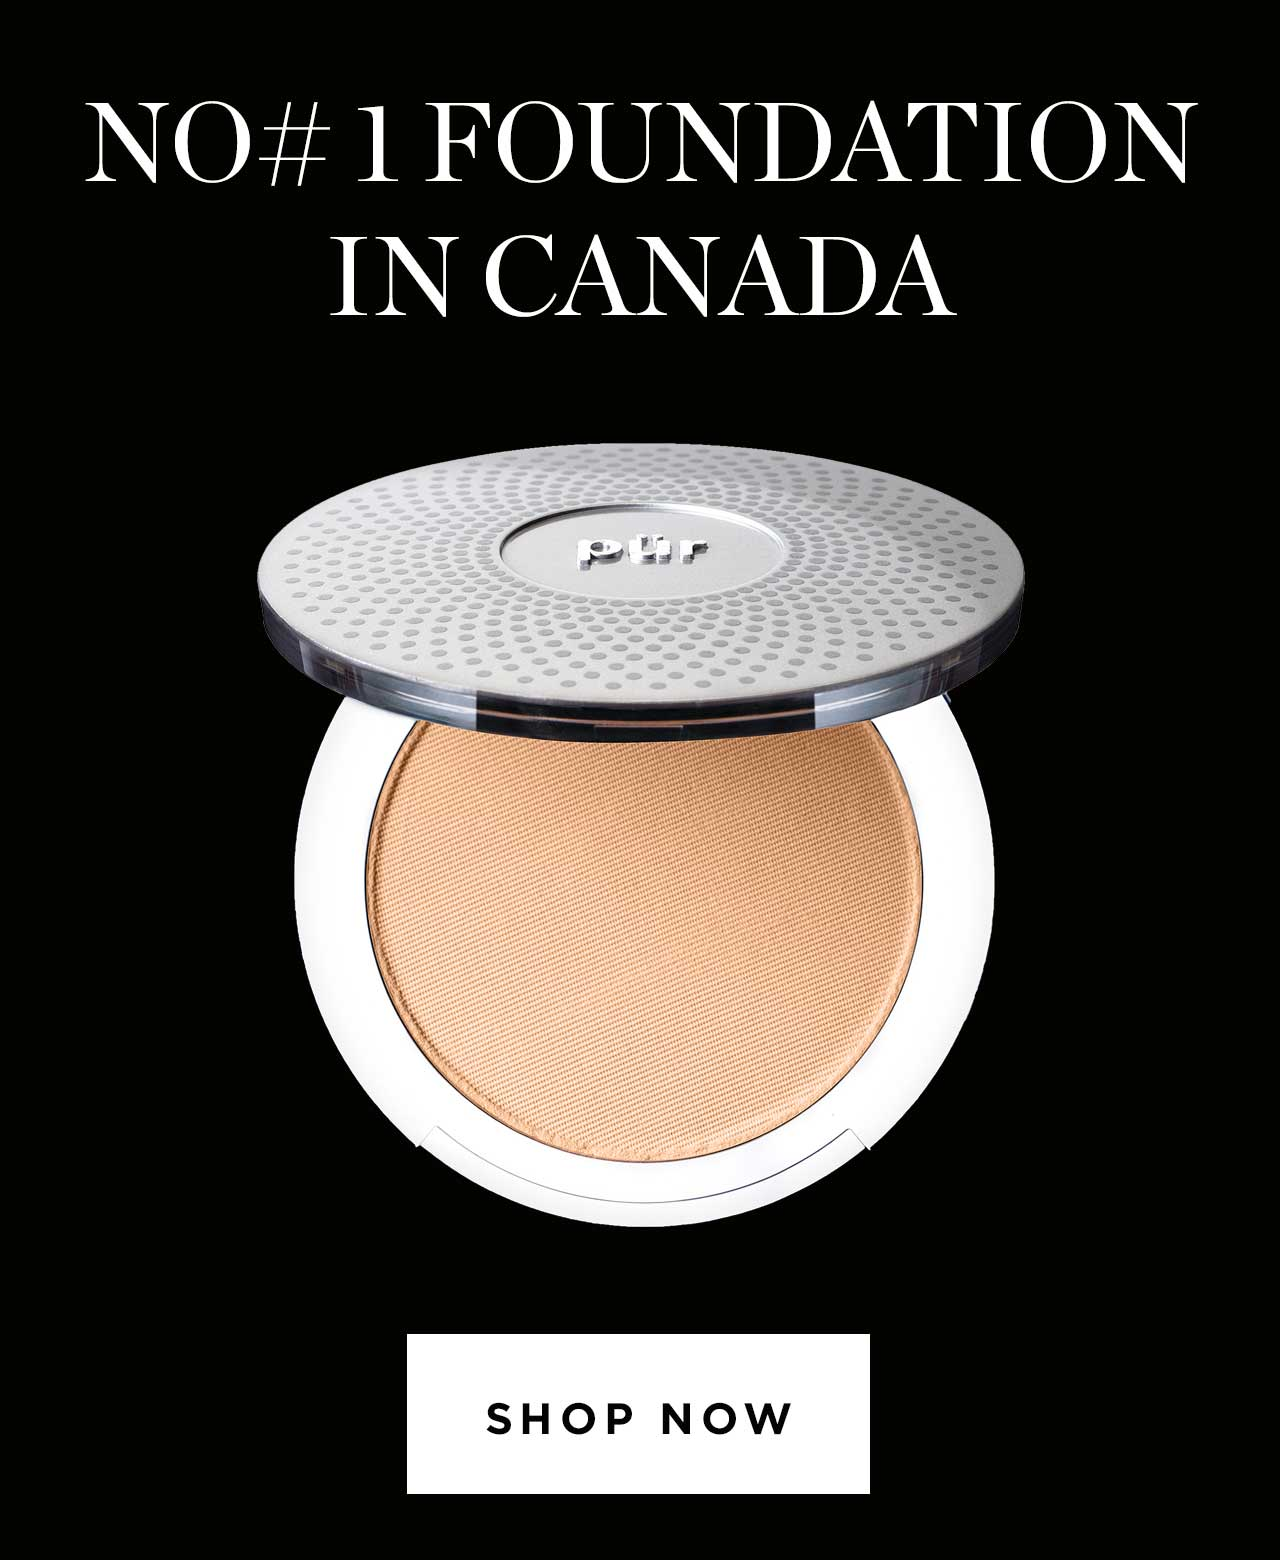 No 1 Foundation in Canada